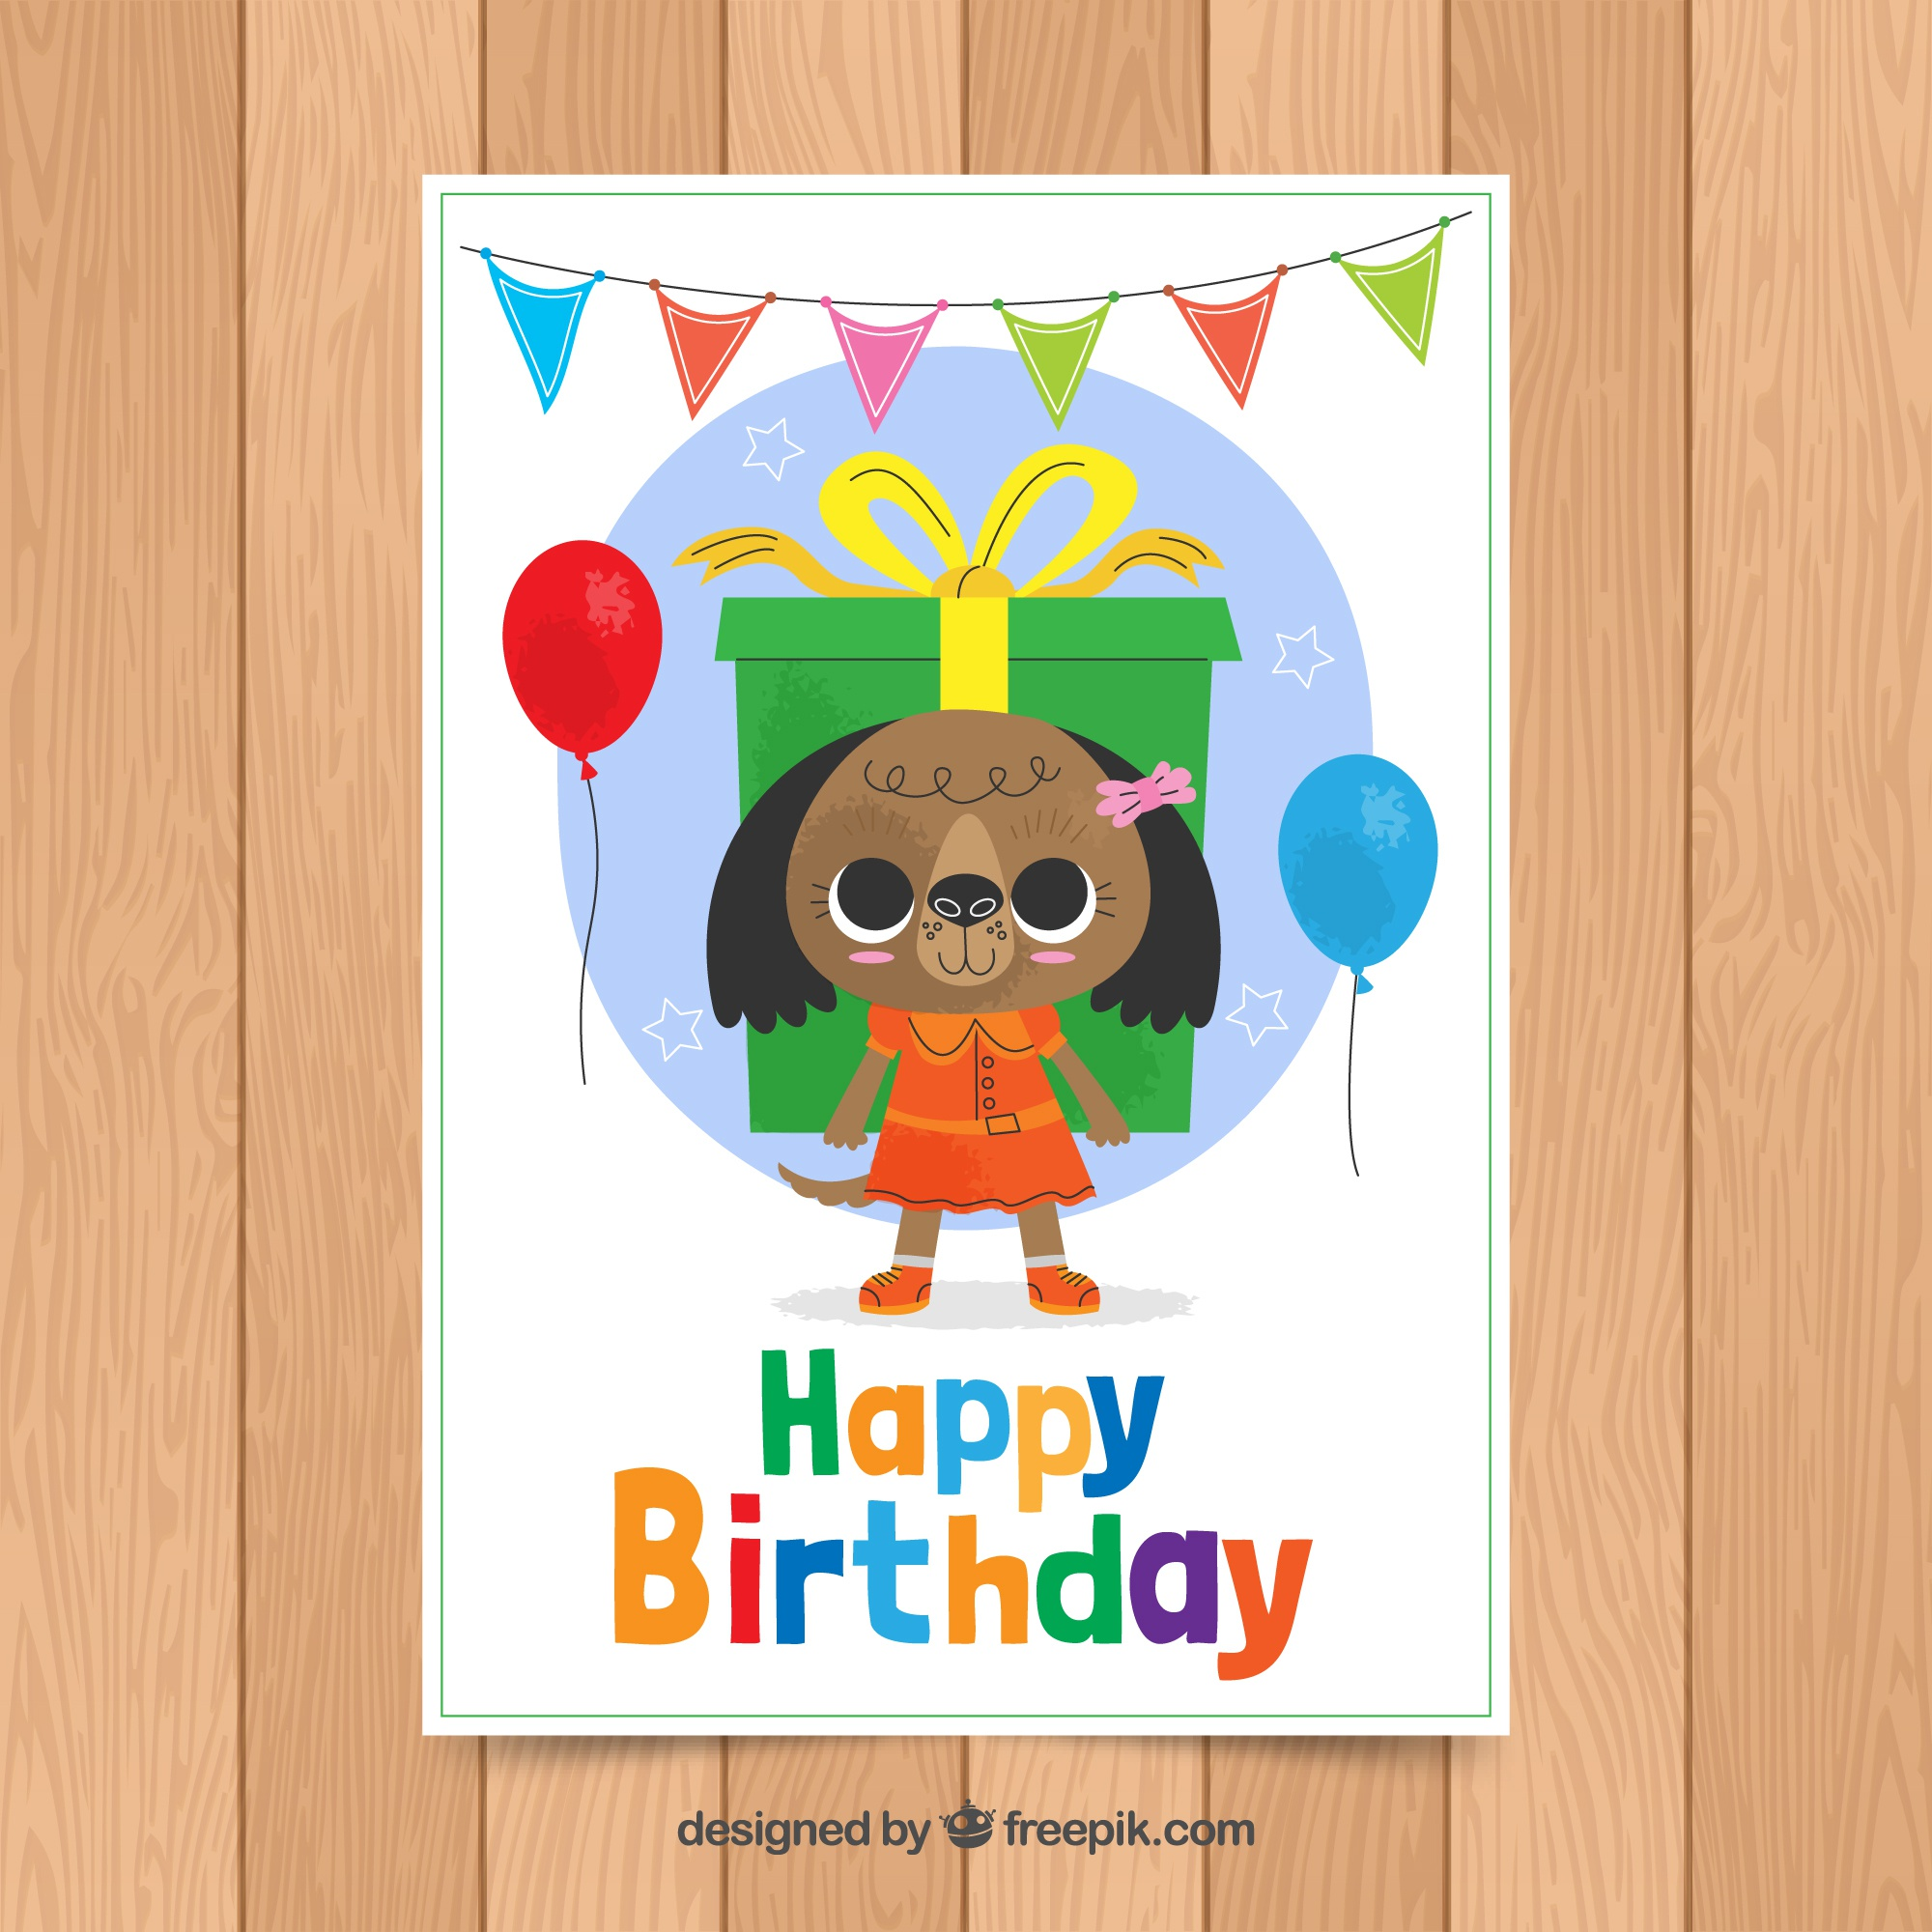 Birthday card template with cute bear